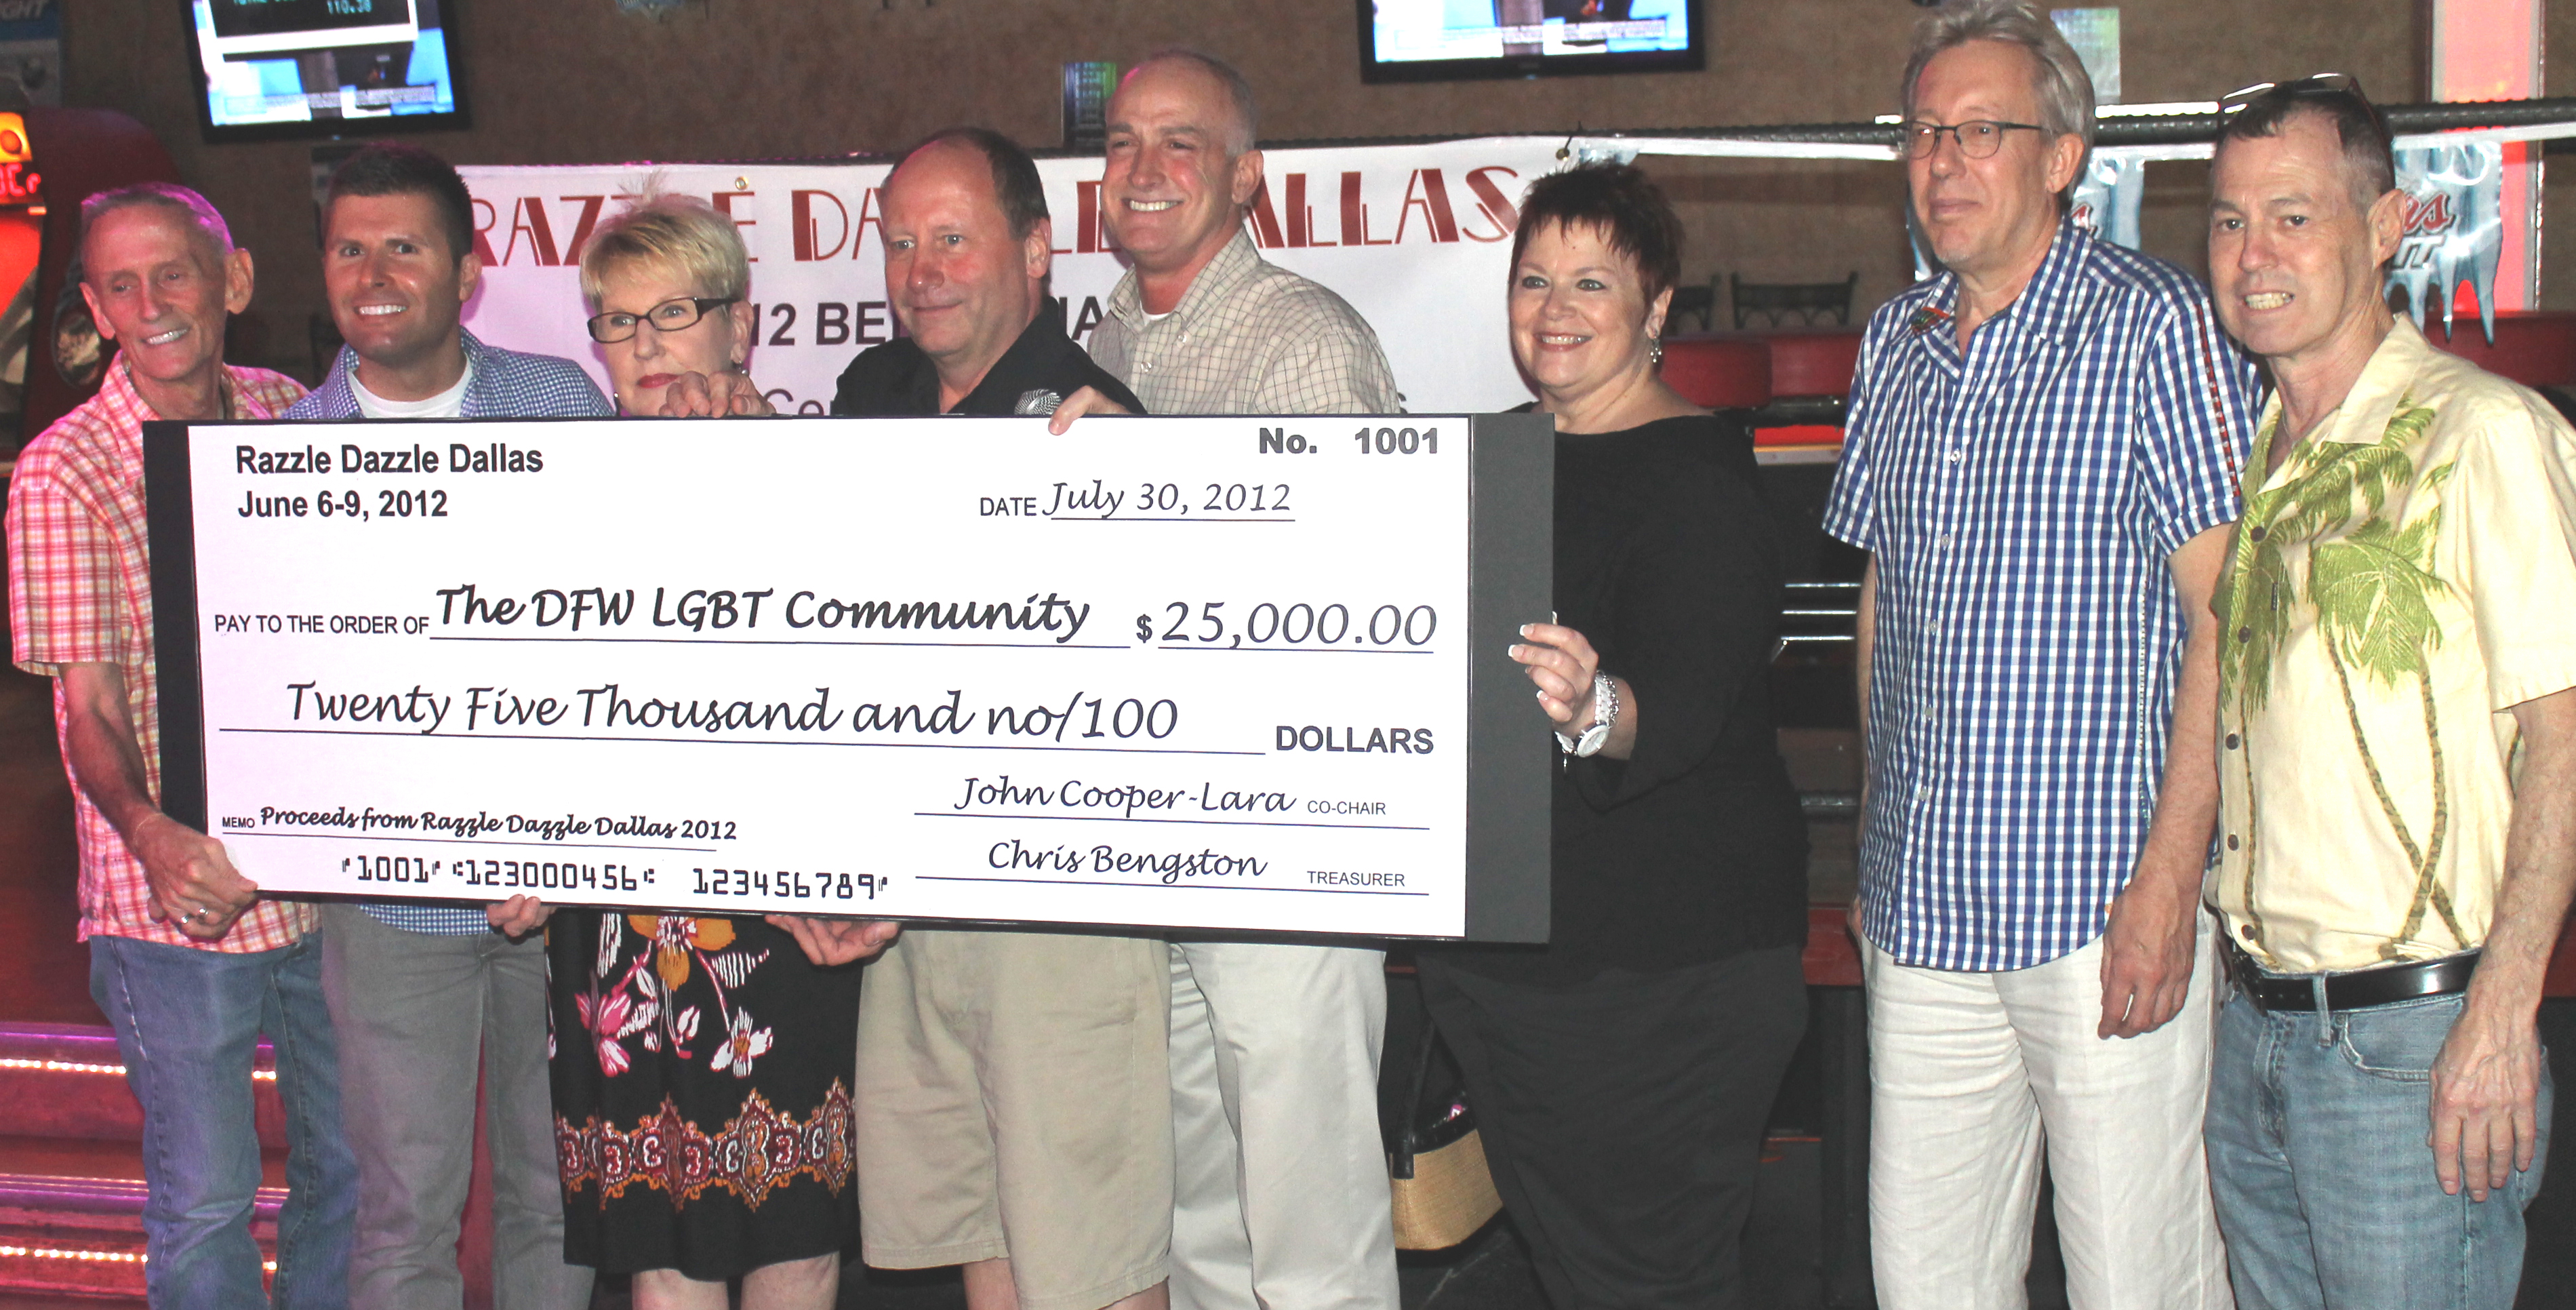 Razzle Dazzle Dallas distributes proceeds